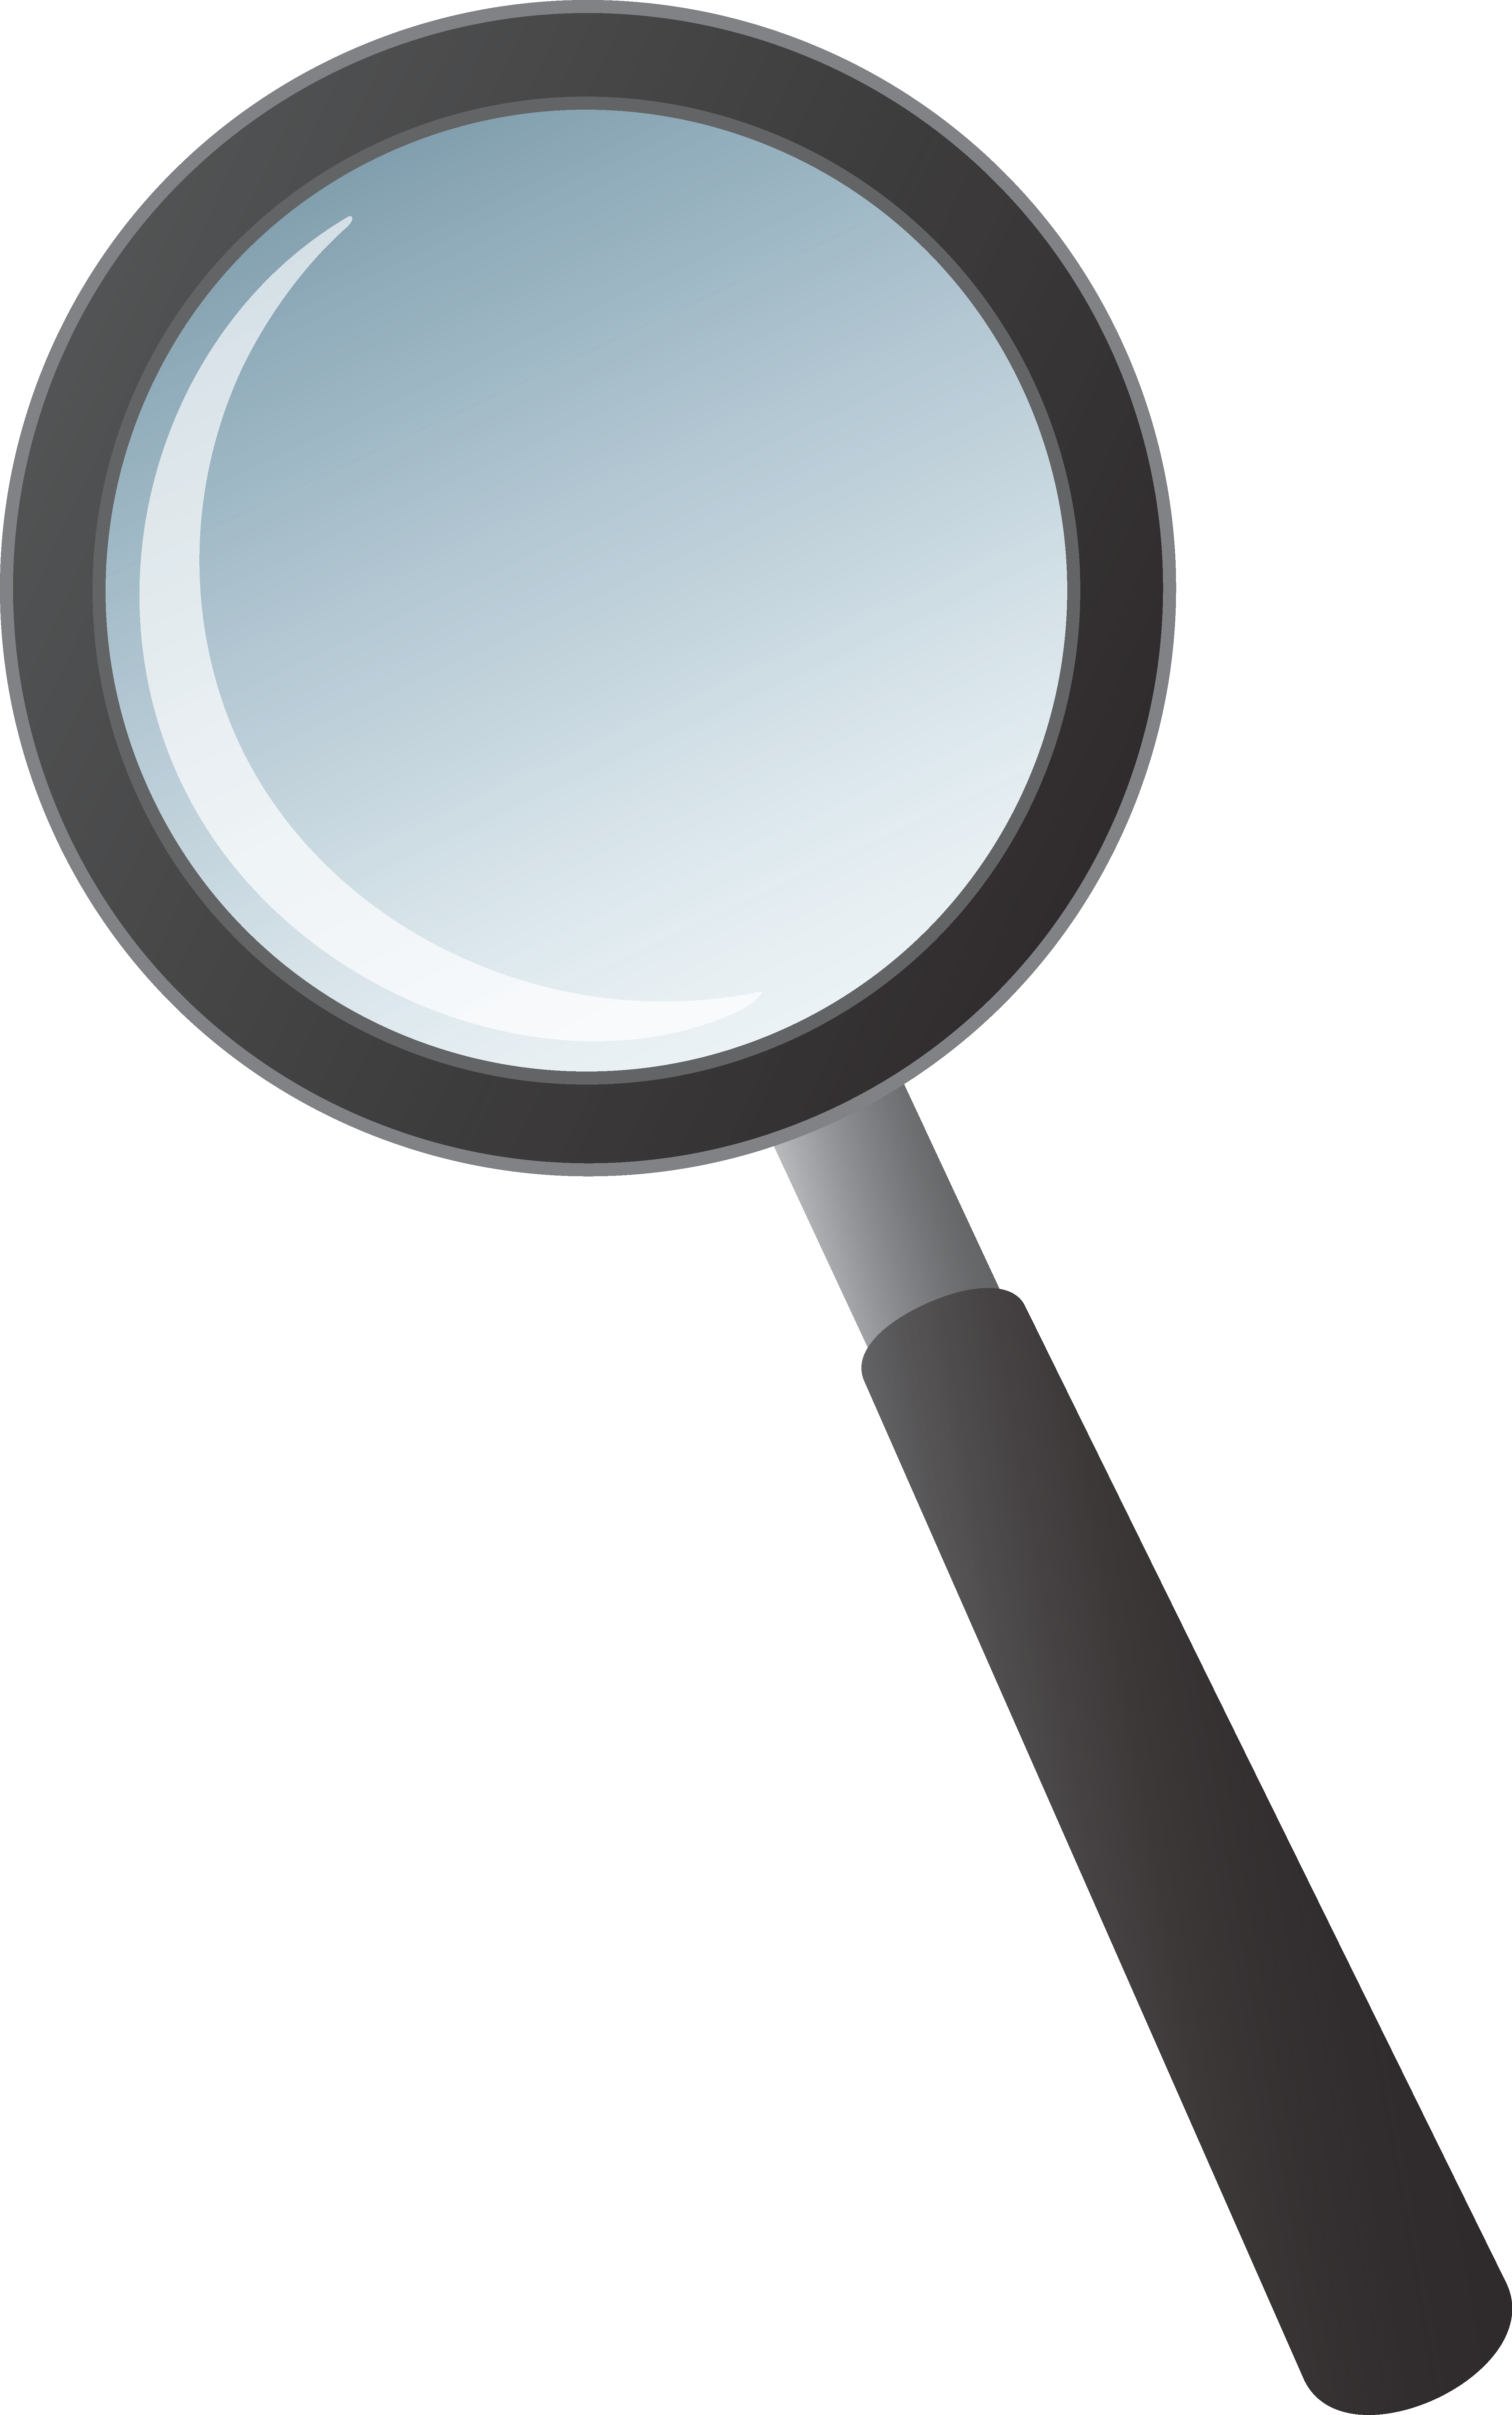 Magnifying Glass Clipart - Clipartion.com